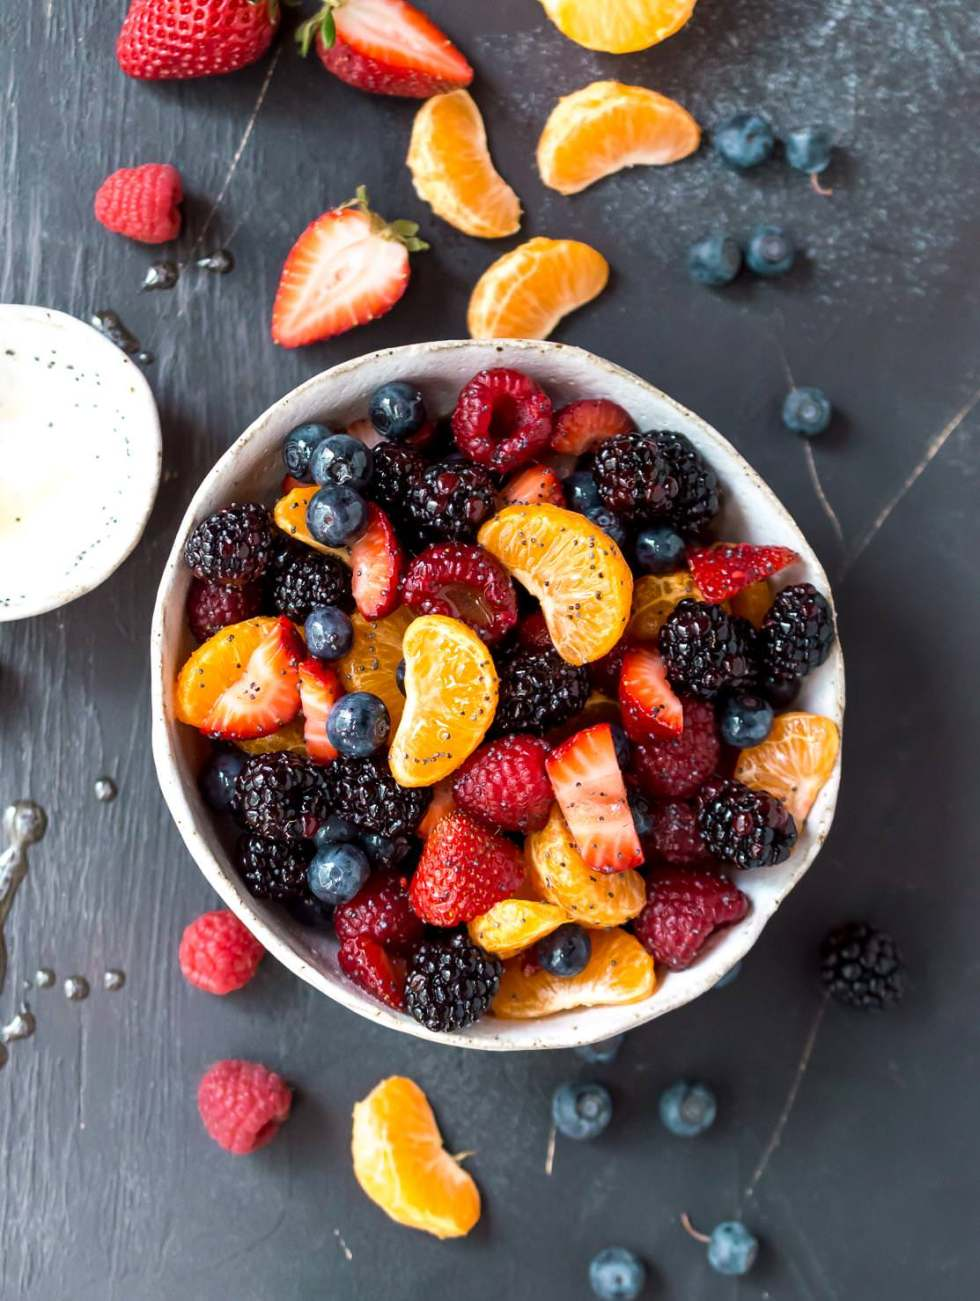 over head photo of berry fruit salad with berries and orange segments on black background